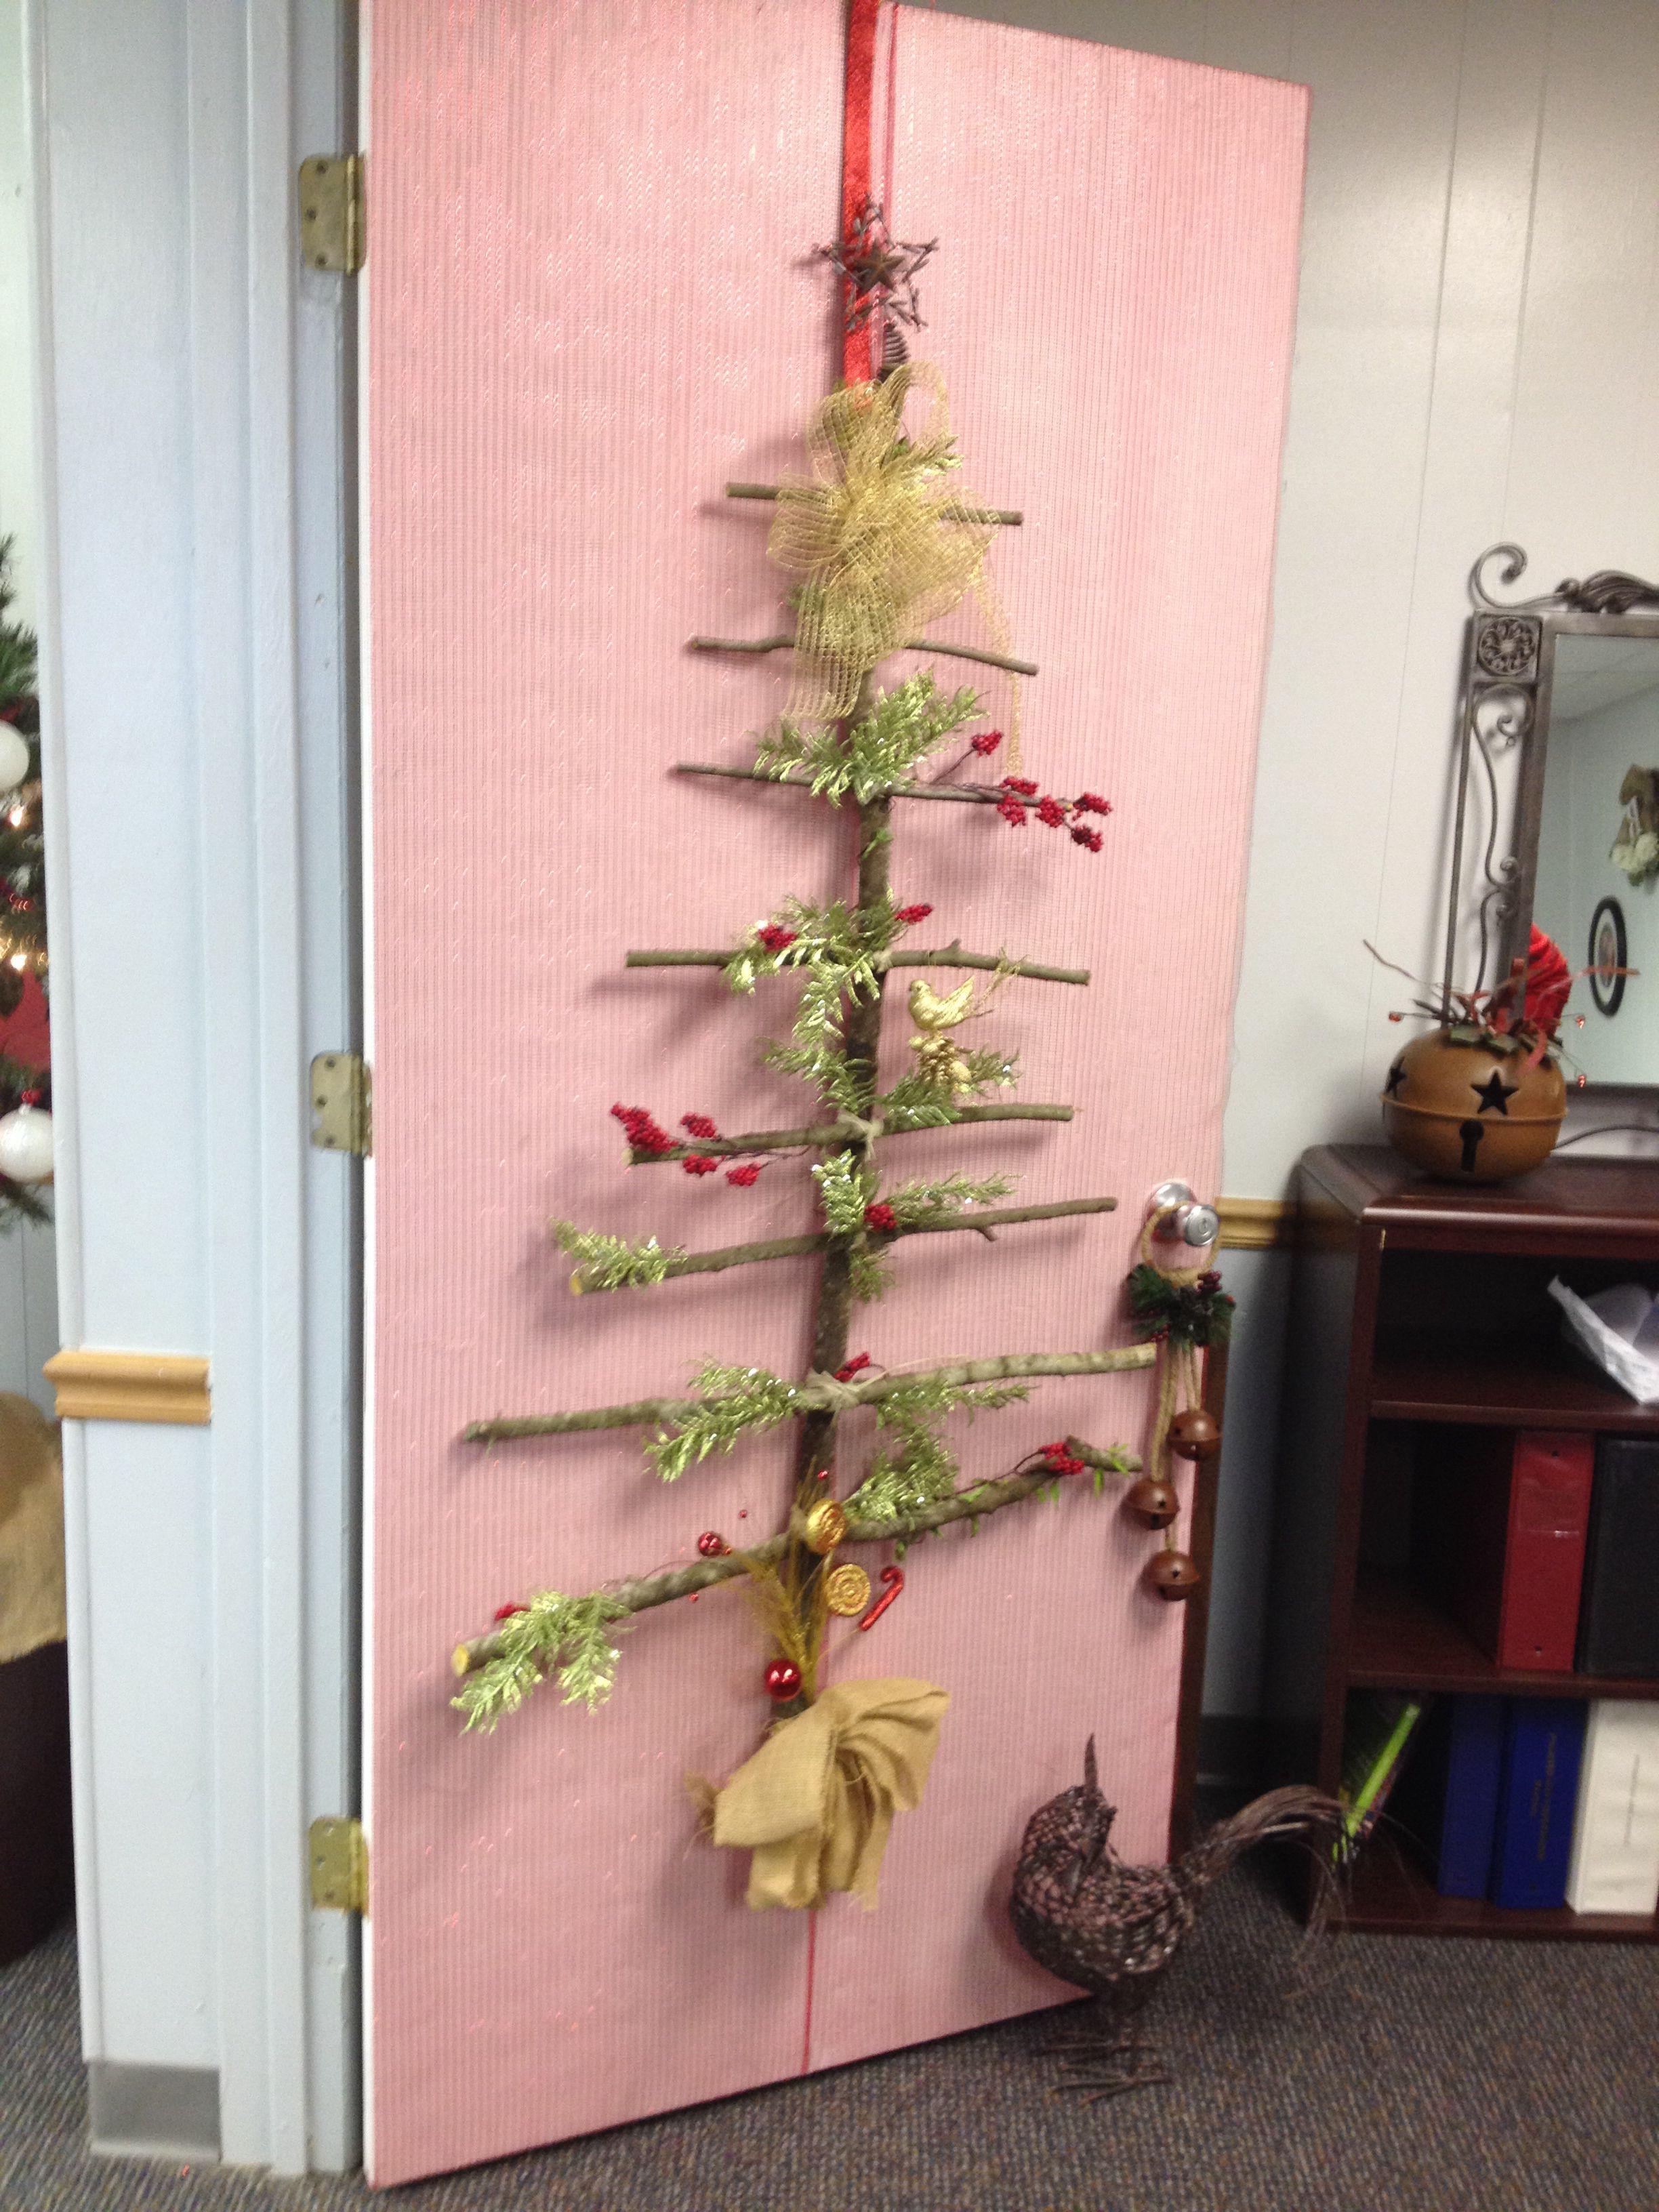 Creative Office Door Decorations Christmas Psoriasisguru Com